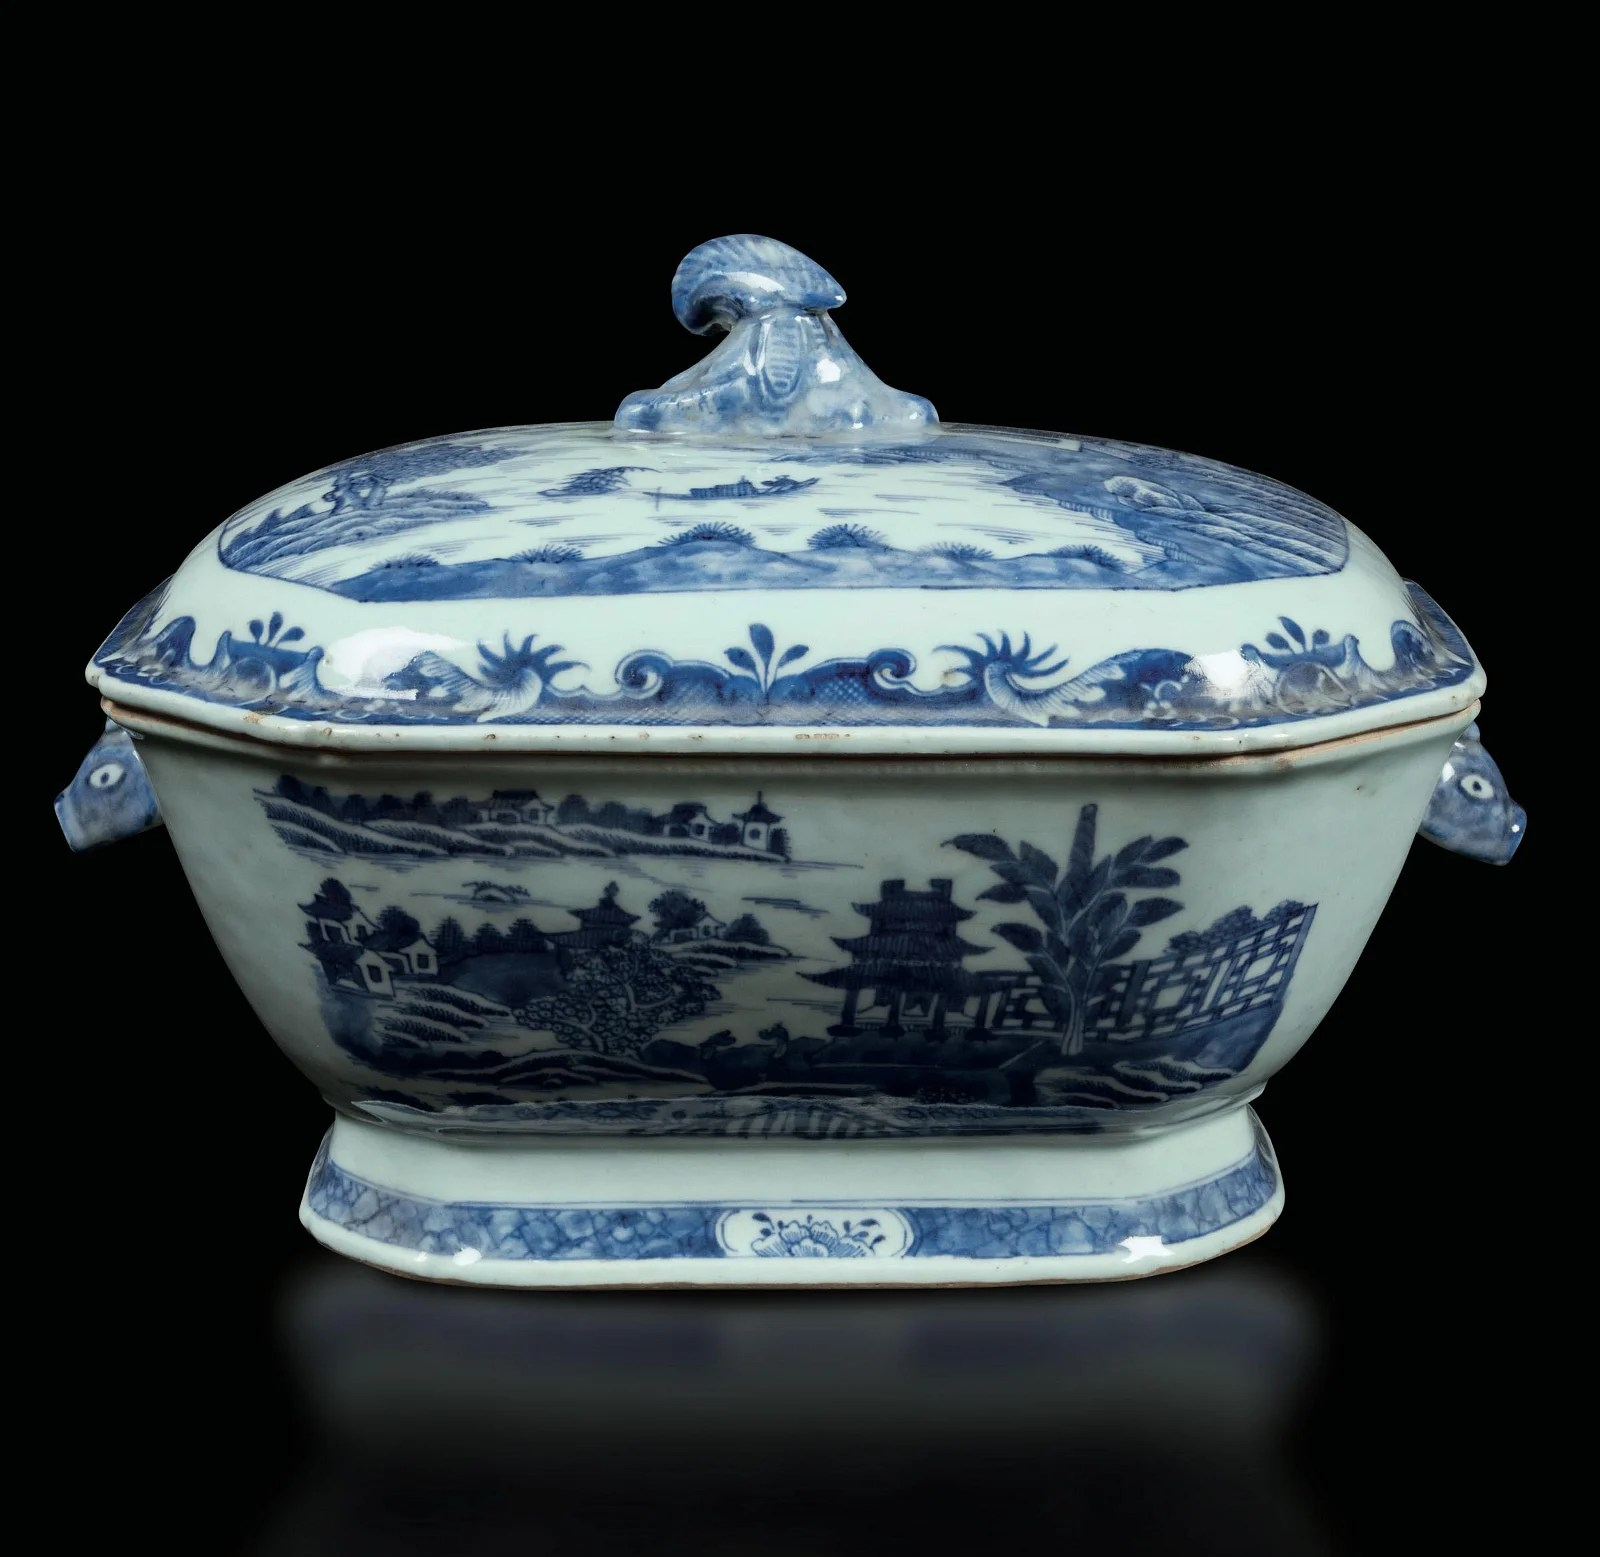 A porcelain tureen, China, Qing Dynasty